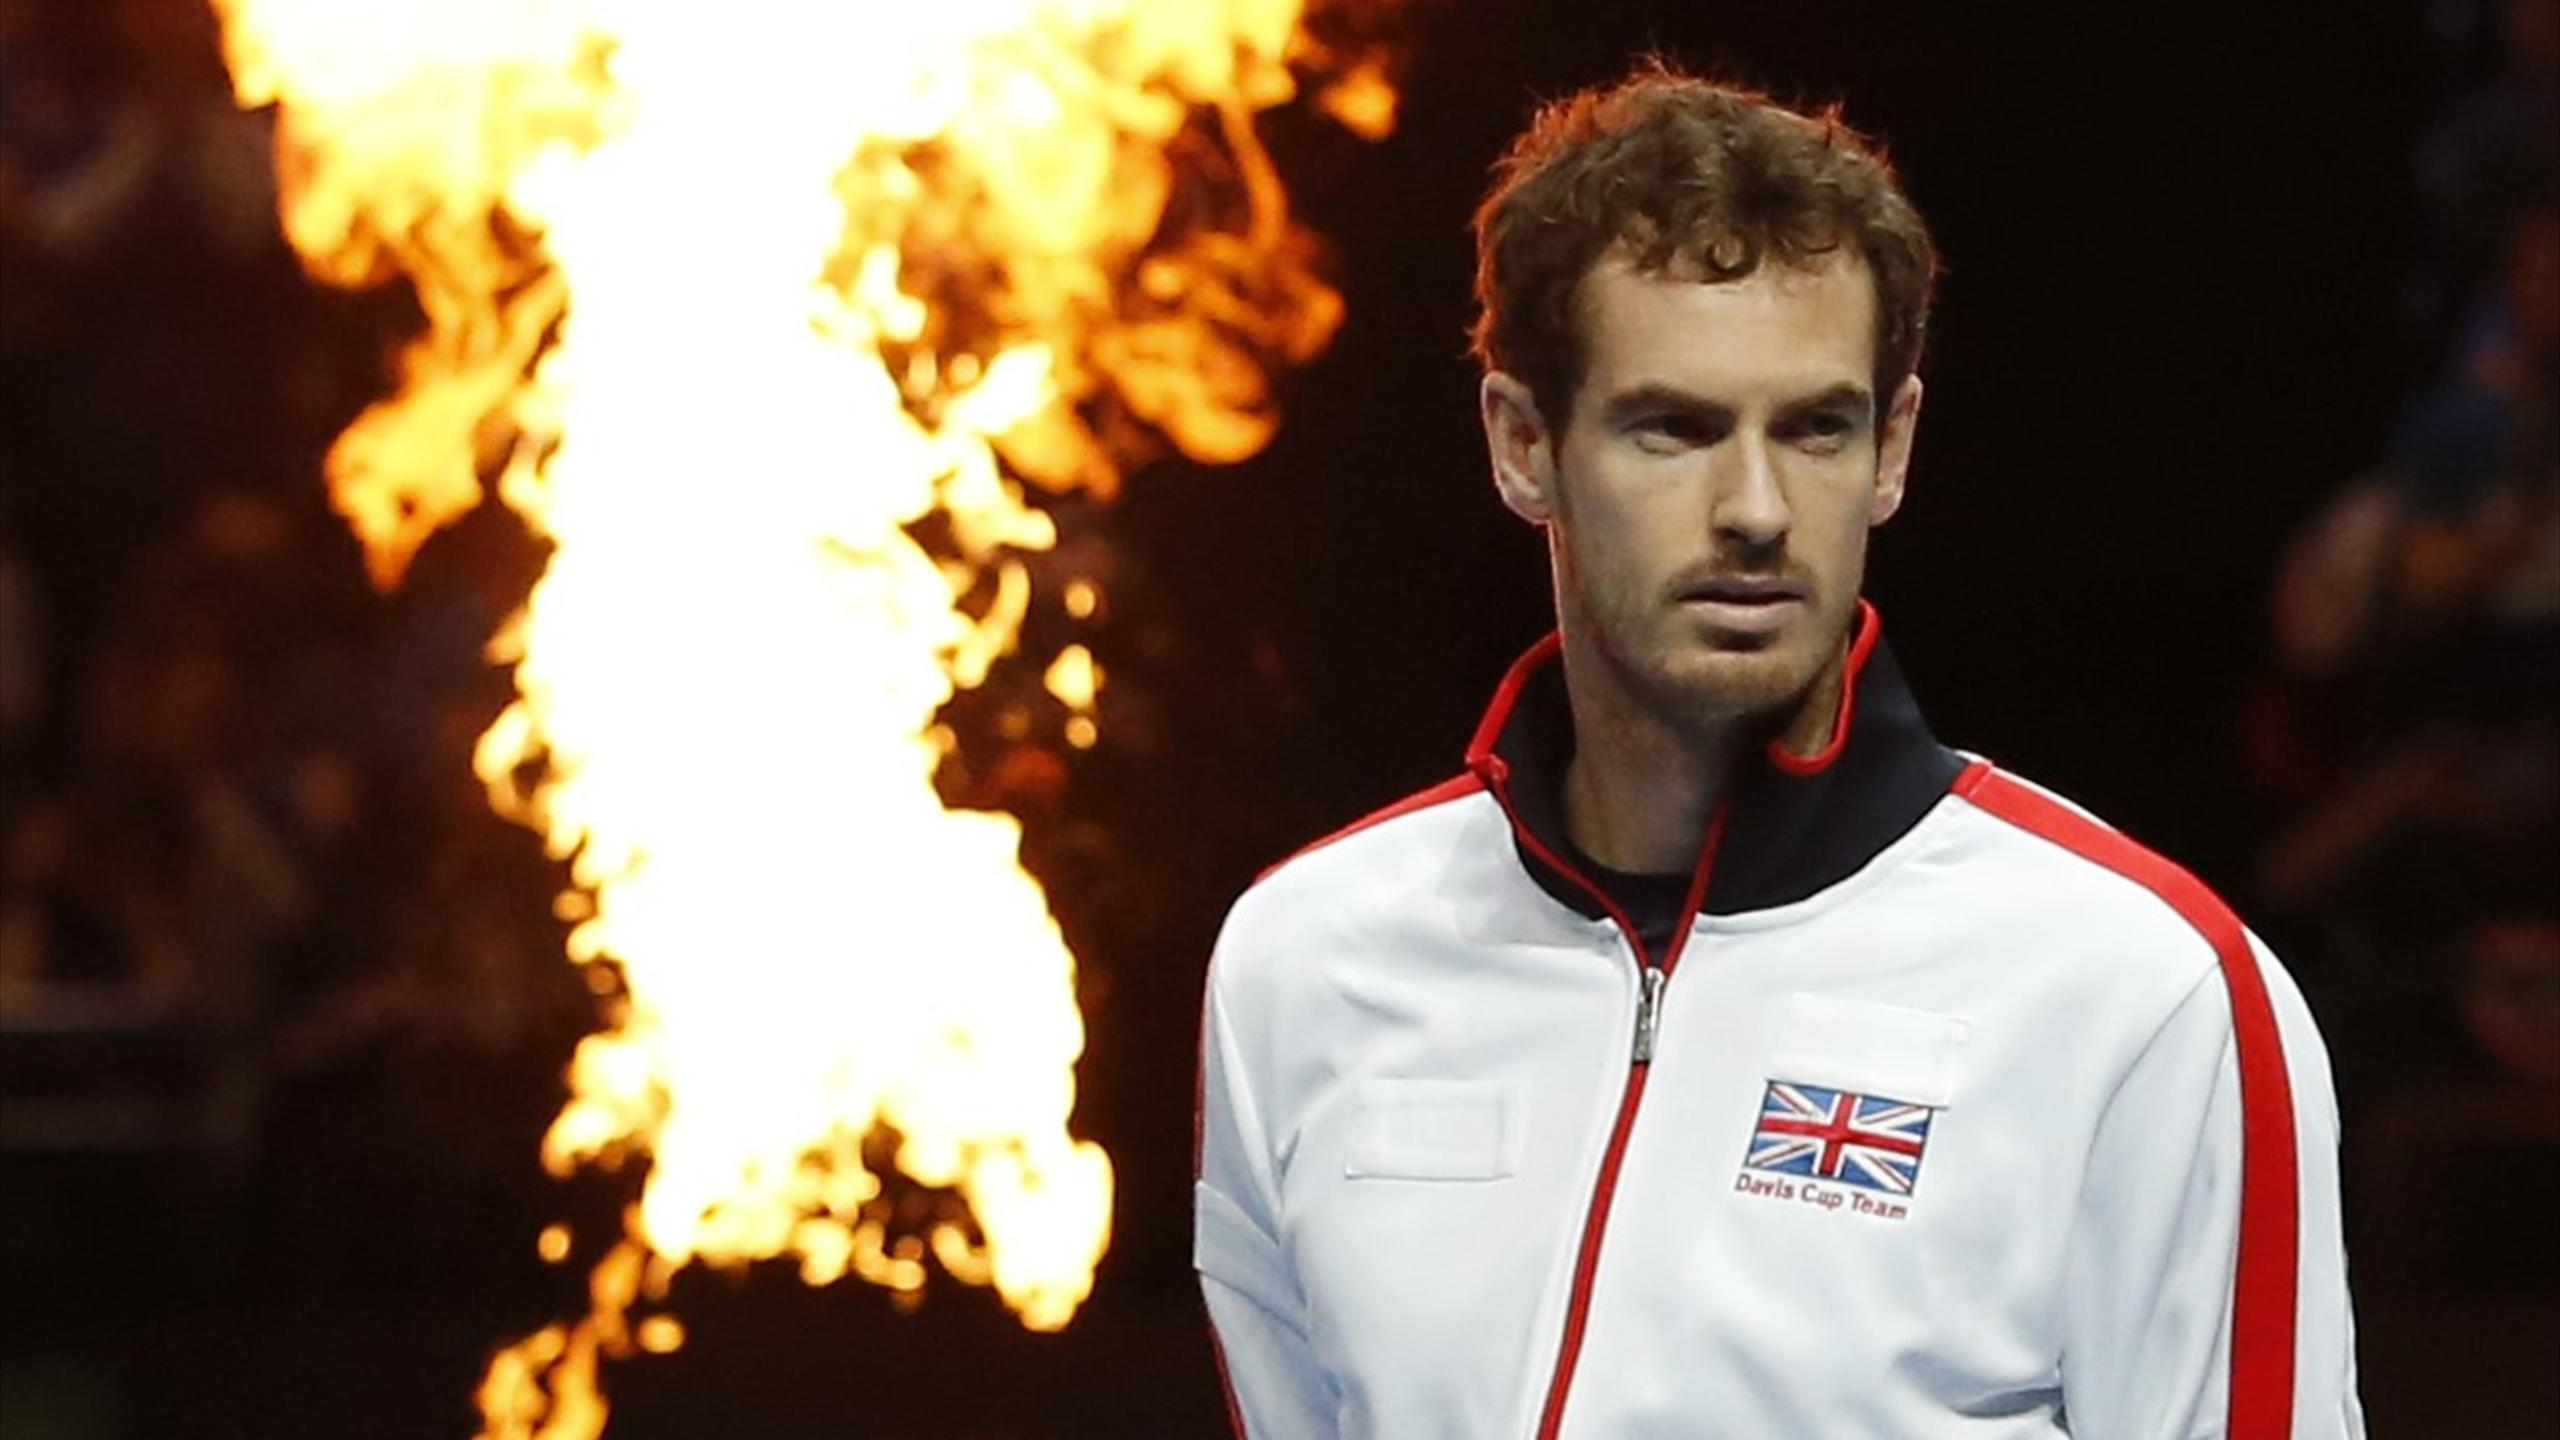 Britain's Andy Murray competing in the Davis Cup in 2016